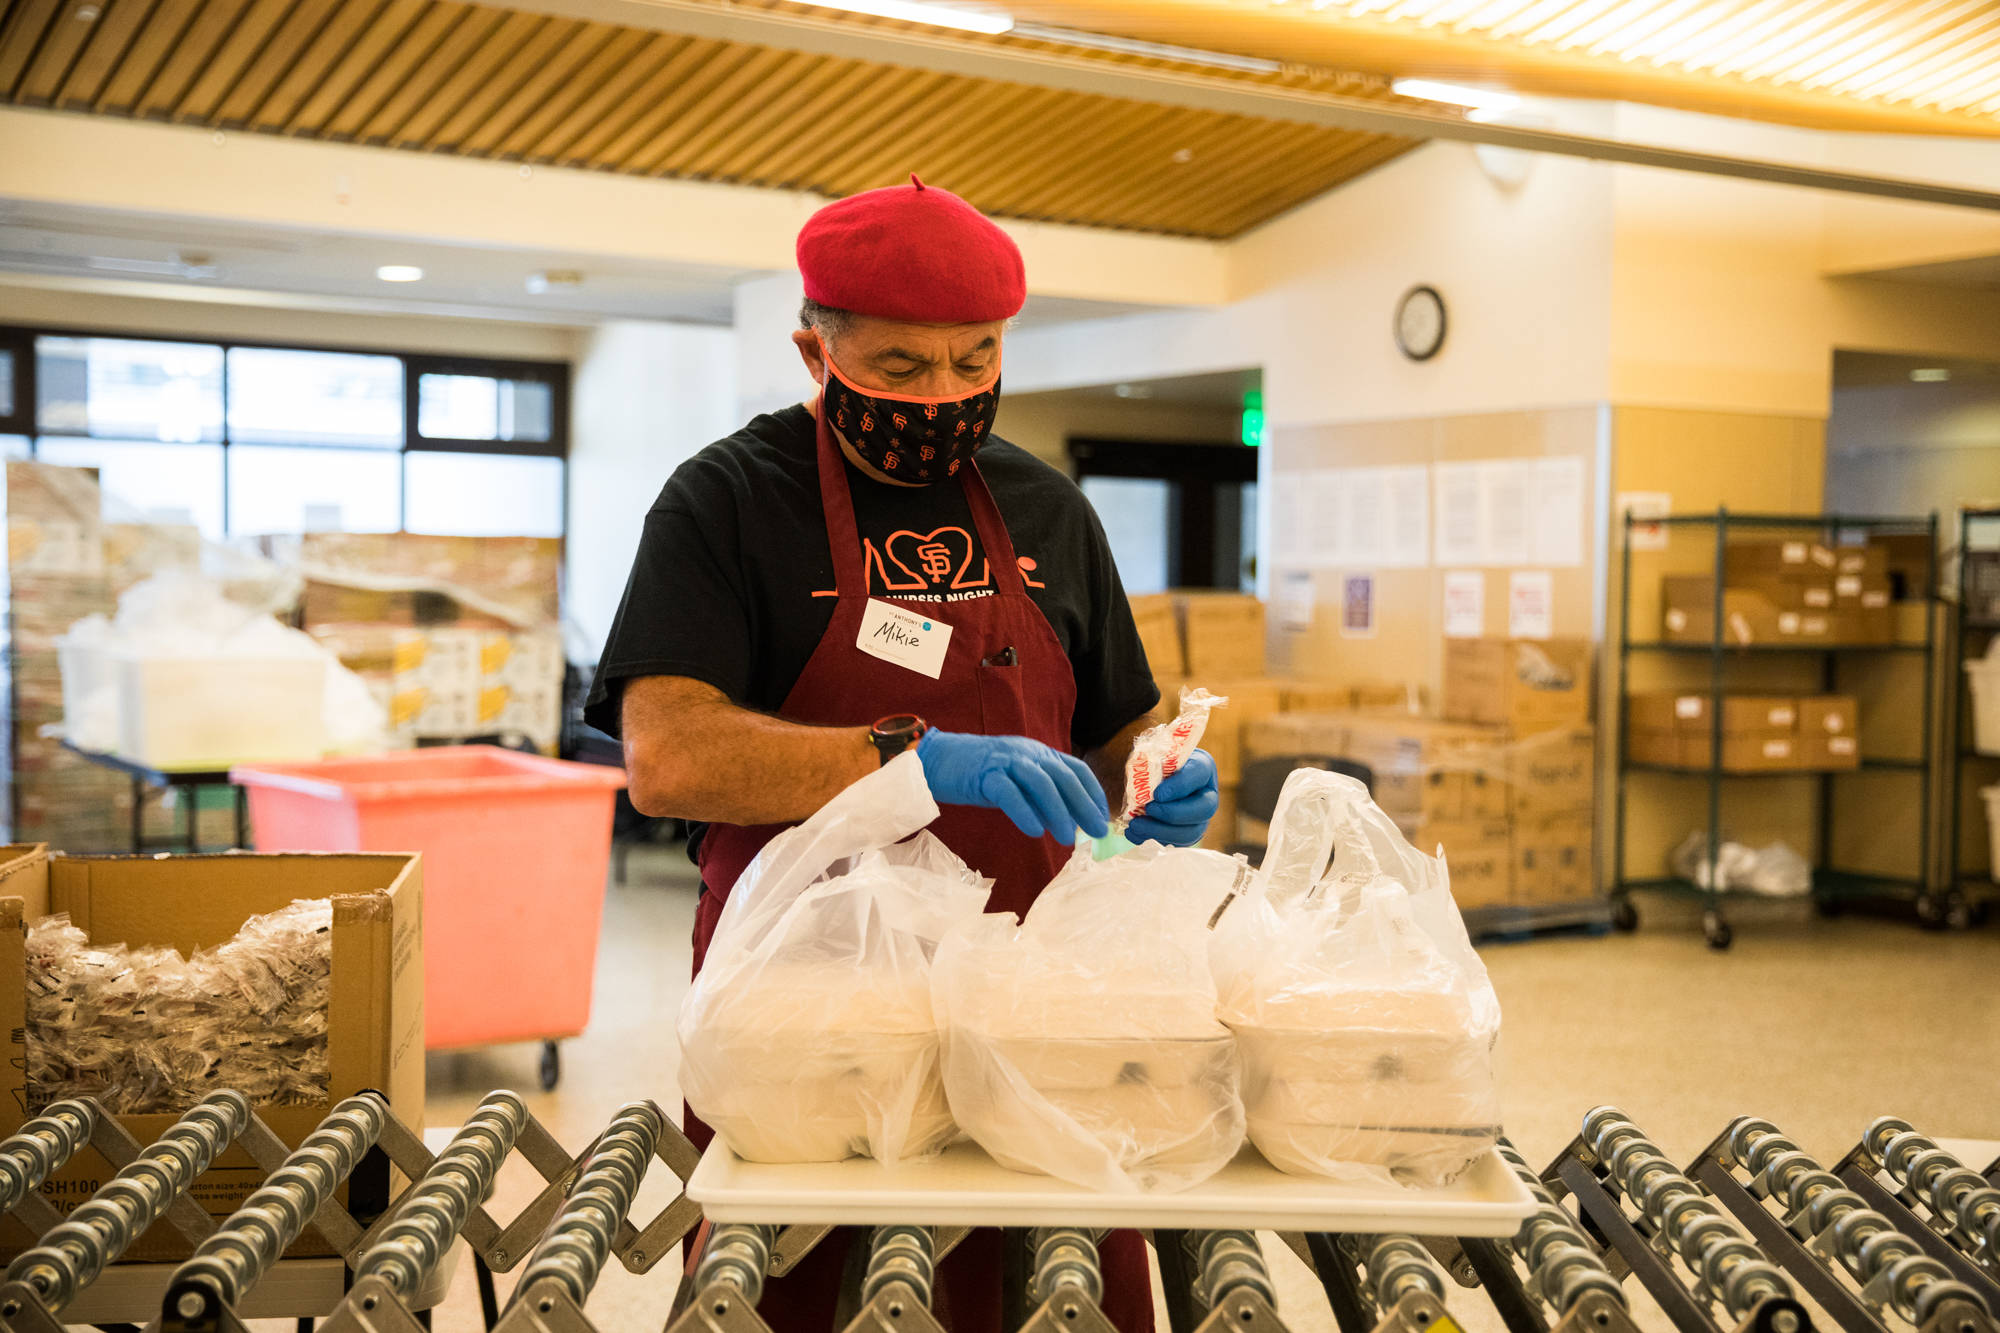 A volunteer prepares bags of warm and cooked meals at St. Anthony Foundation in the Tenderloin neighborhood on Wednesday, Nov. 18, 2020 in San Francisco, Calif. (Photo by Ekevara Kitpowsong/Special to S.F. Examiner)